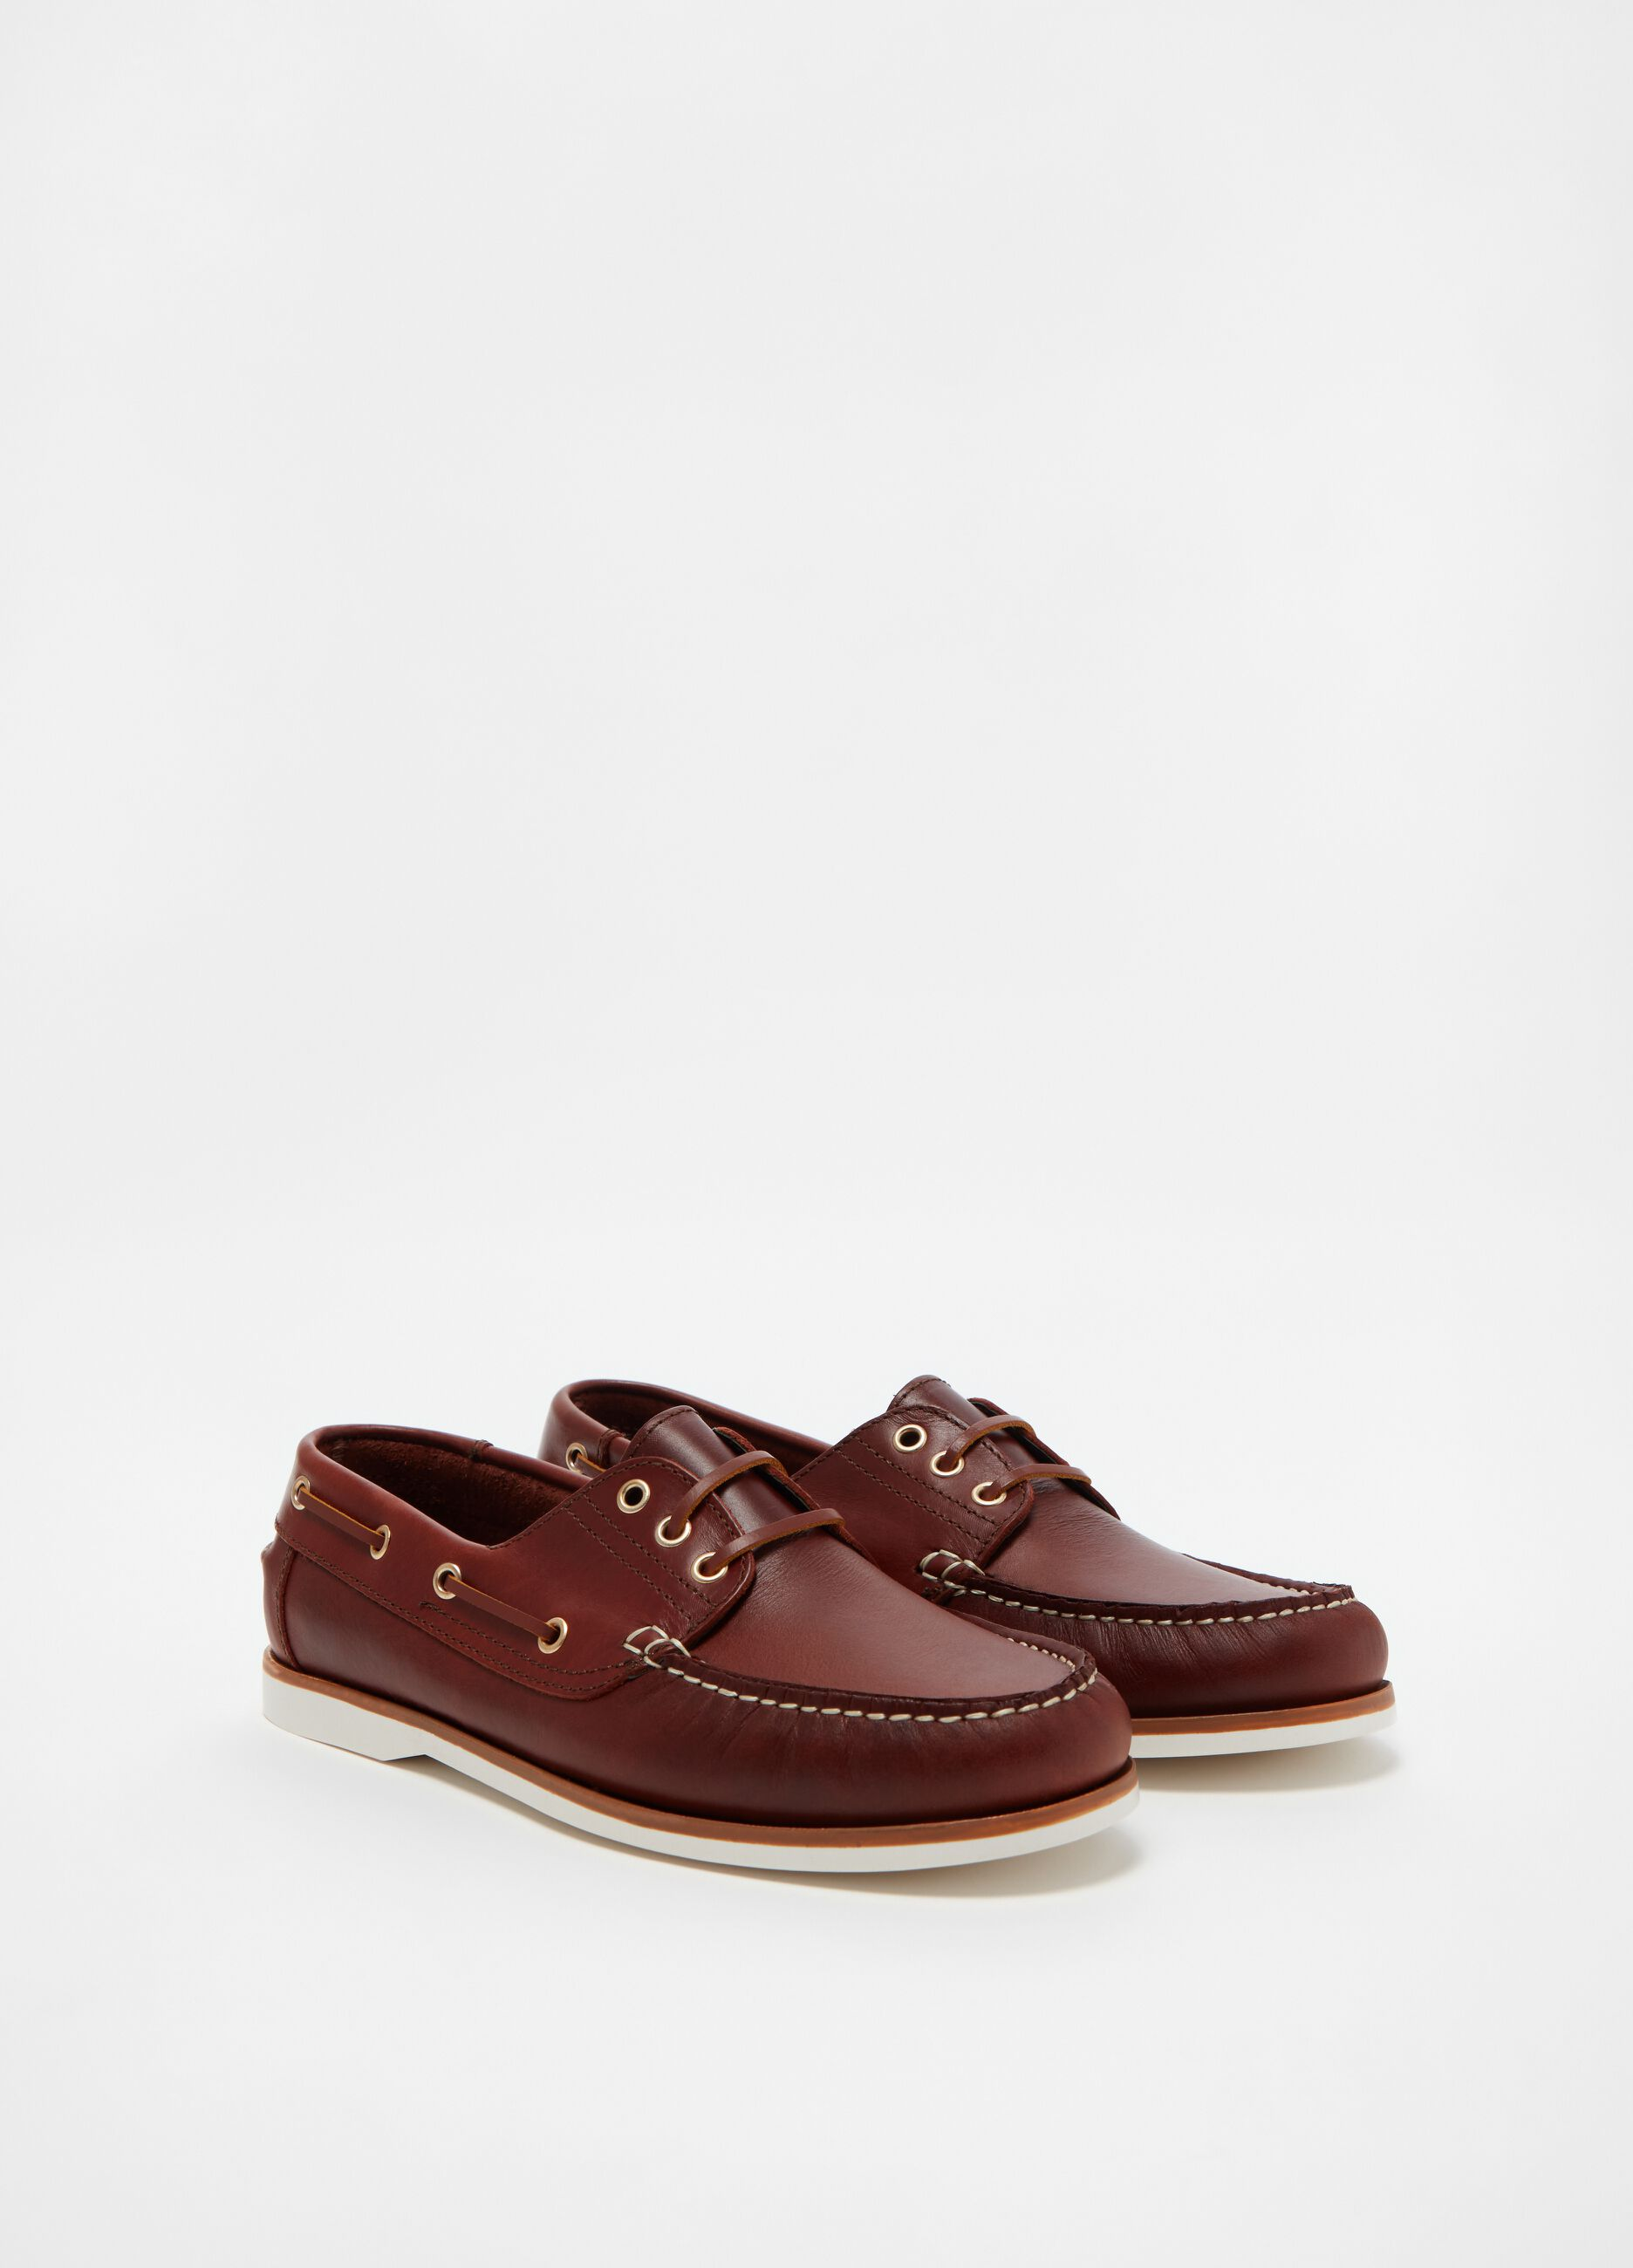 Genuine leather moccasins with laces